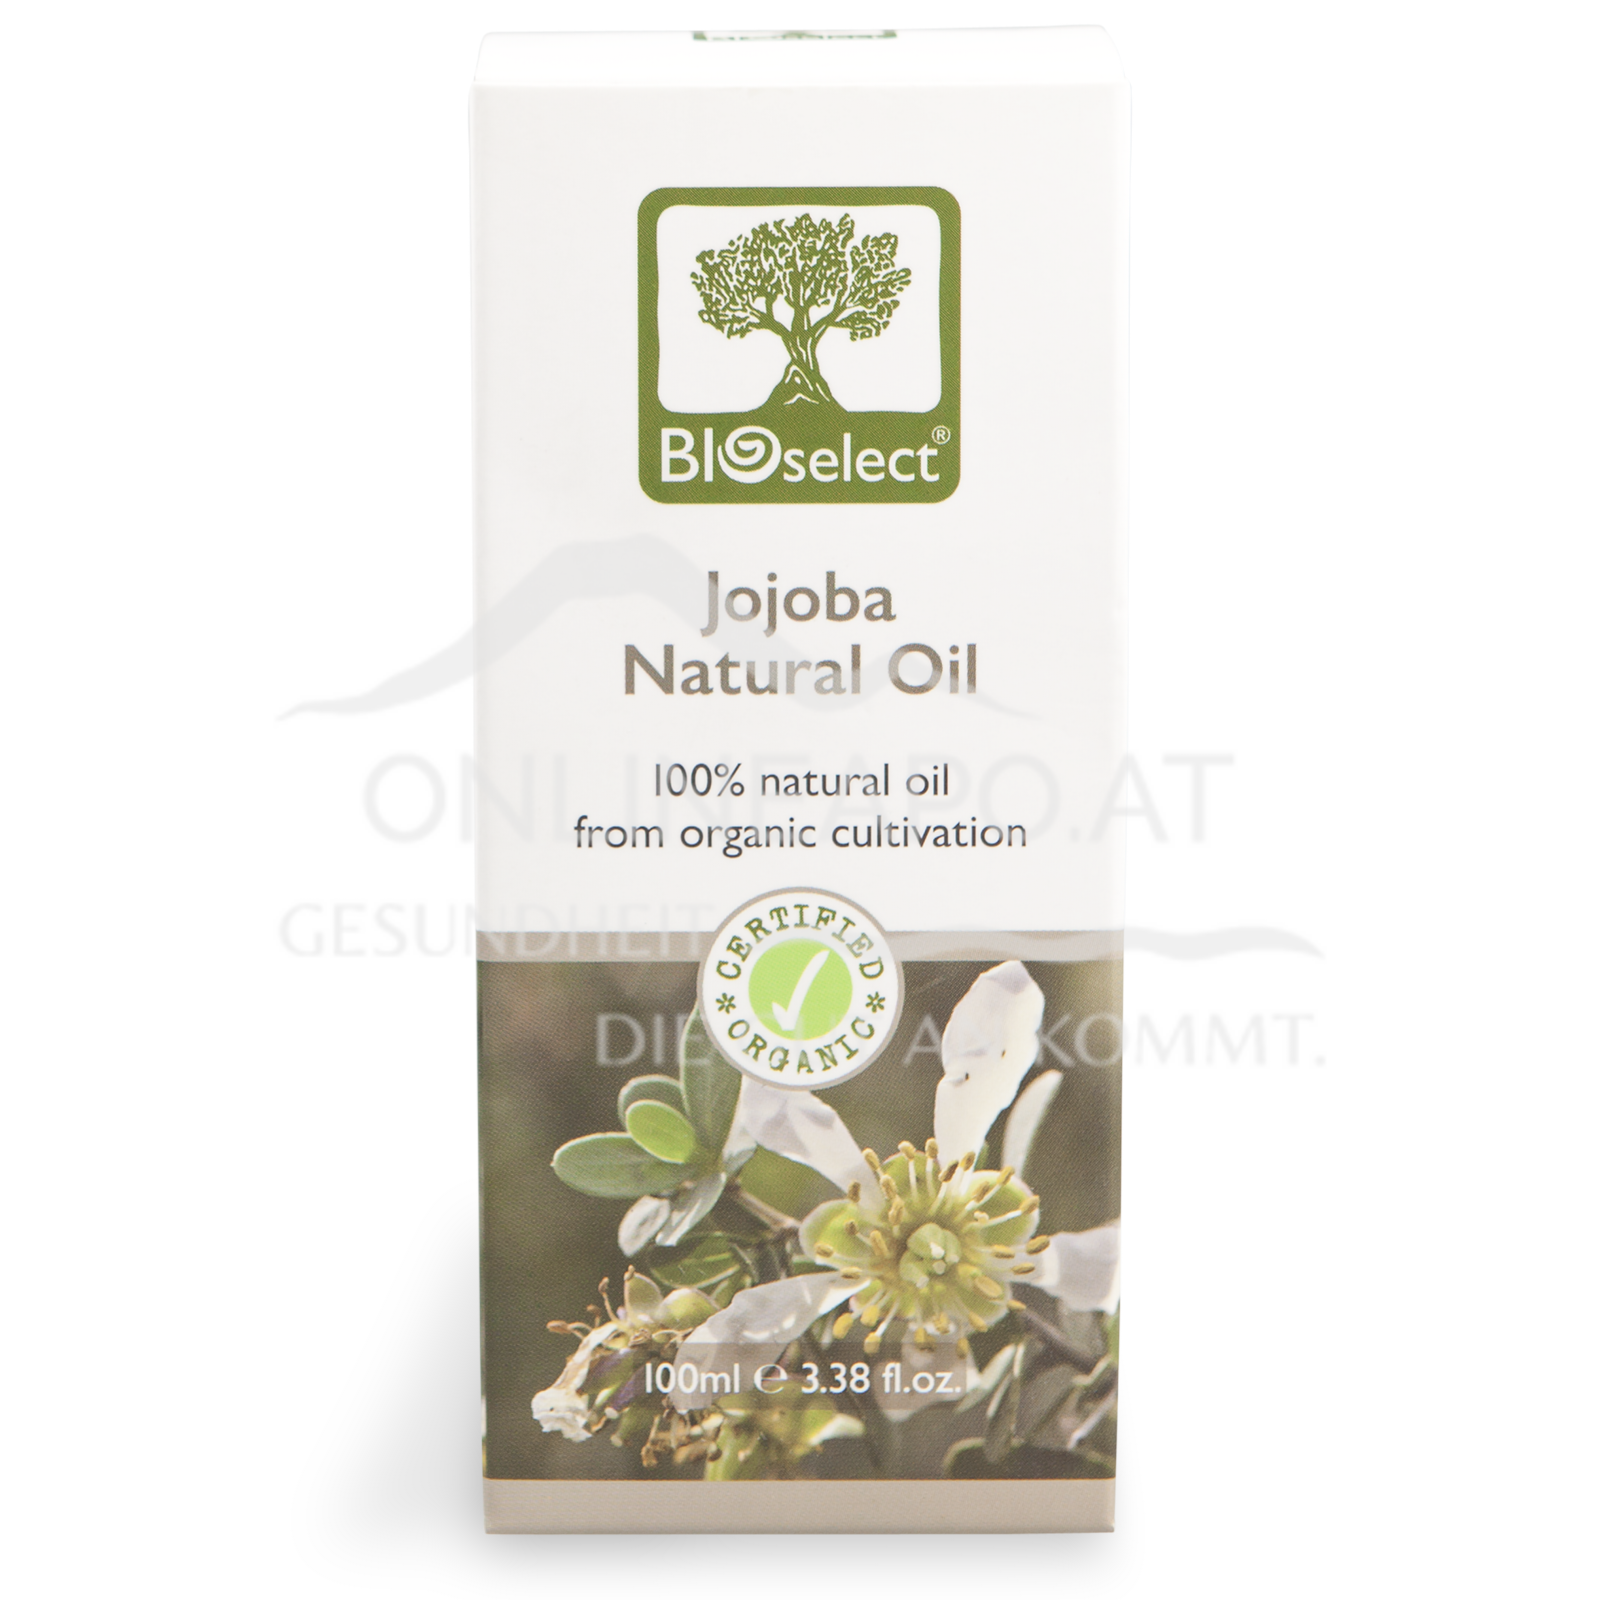 Bioselect Jojoba Natural Oil Certified Organic